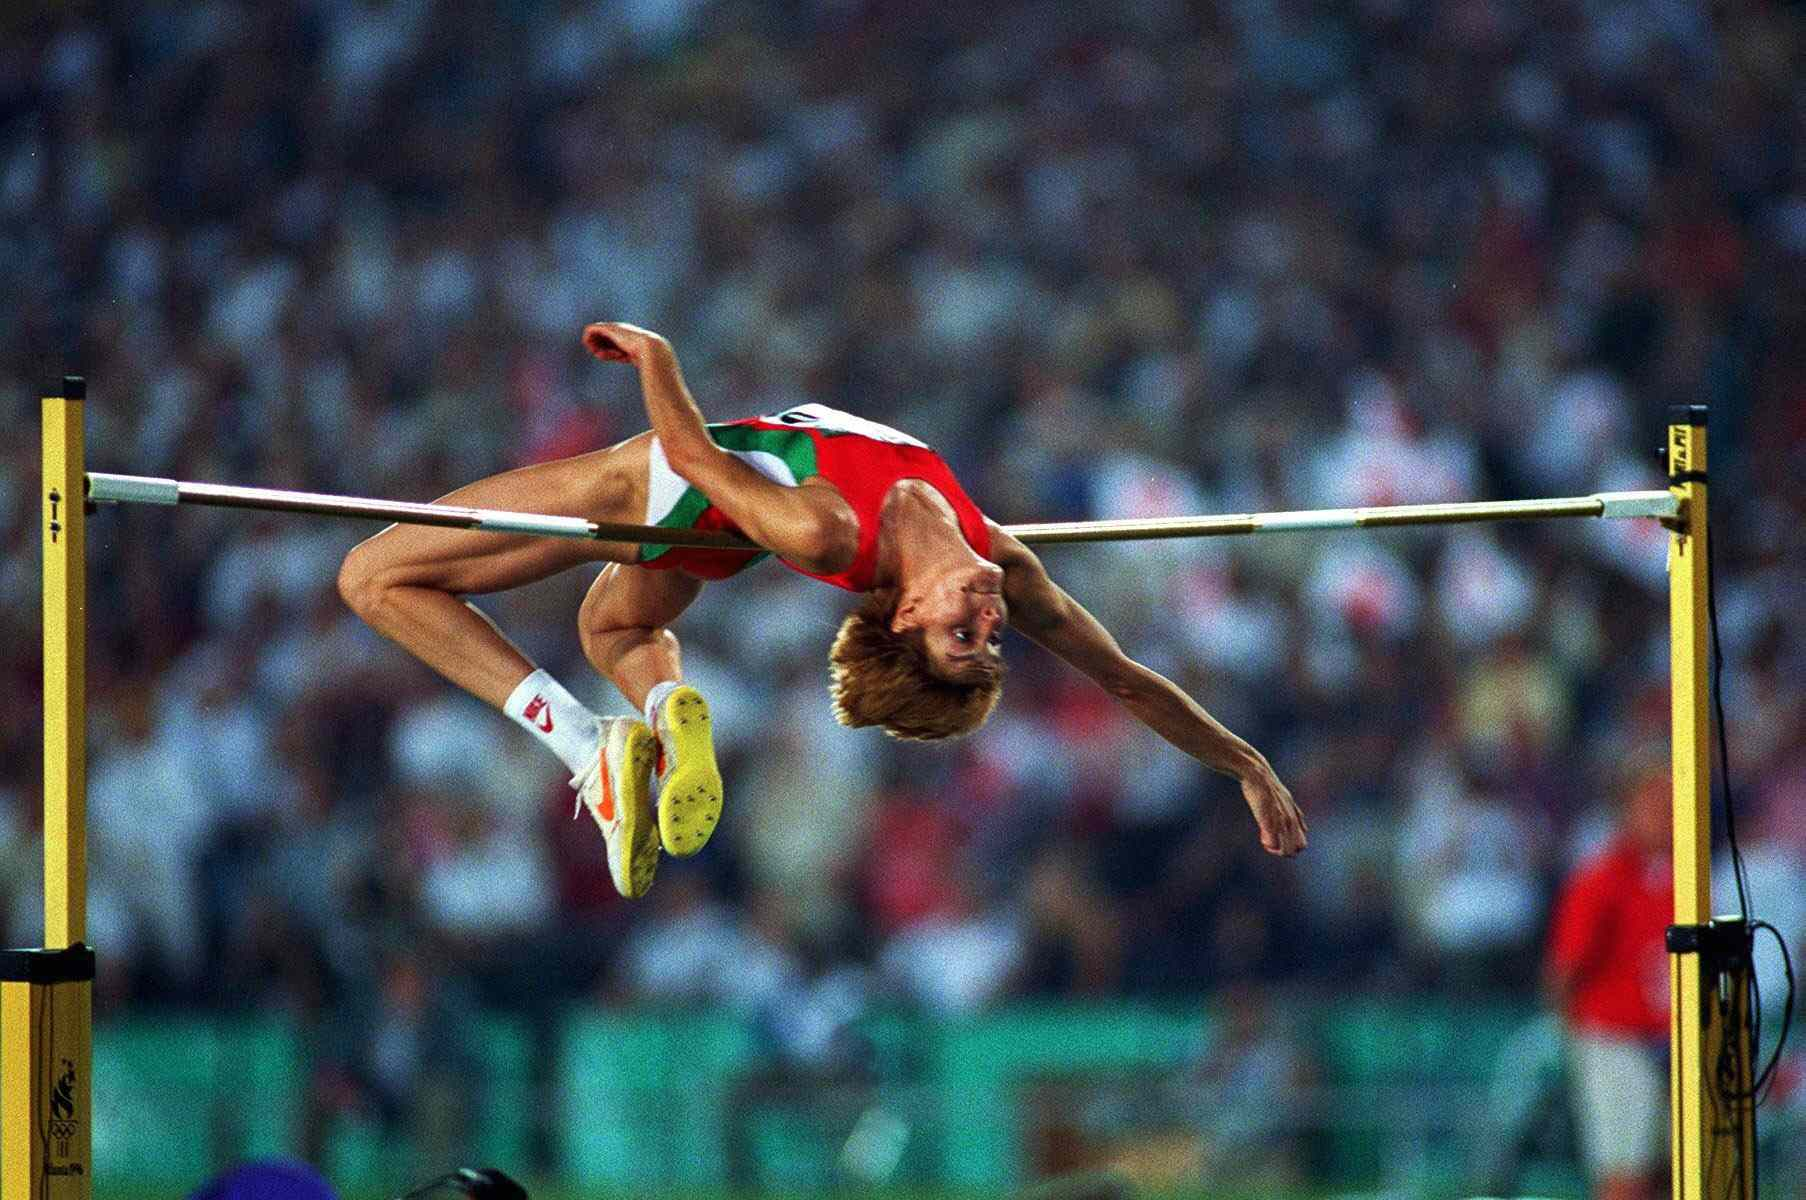 An Illustrated History of the High Jump